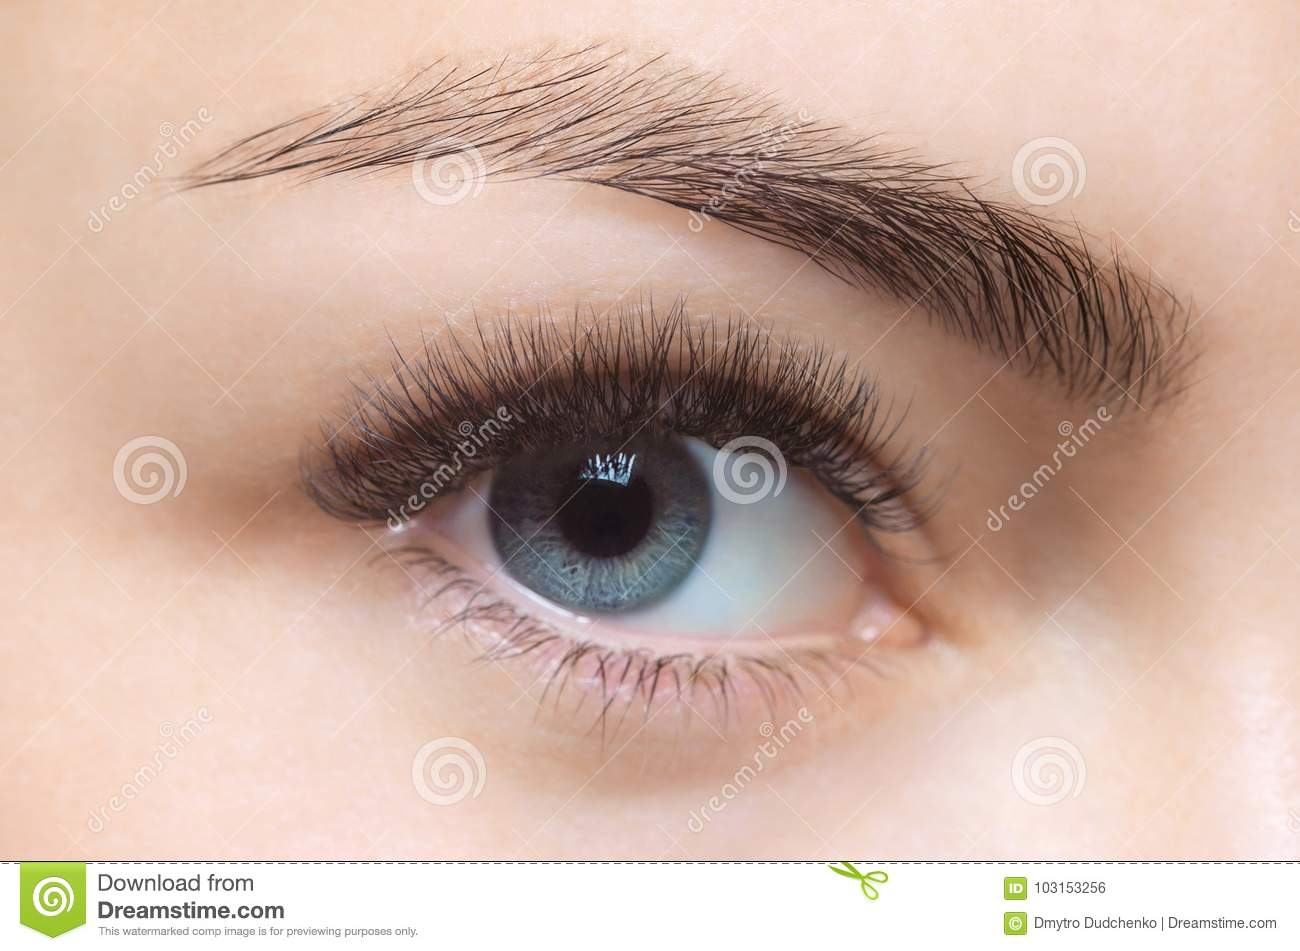 Eyelash removal procedure close up. Beautiful Woman with long lashes